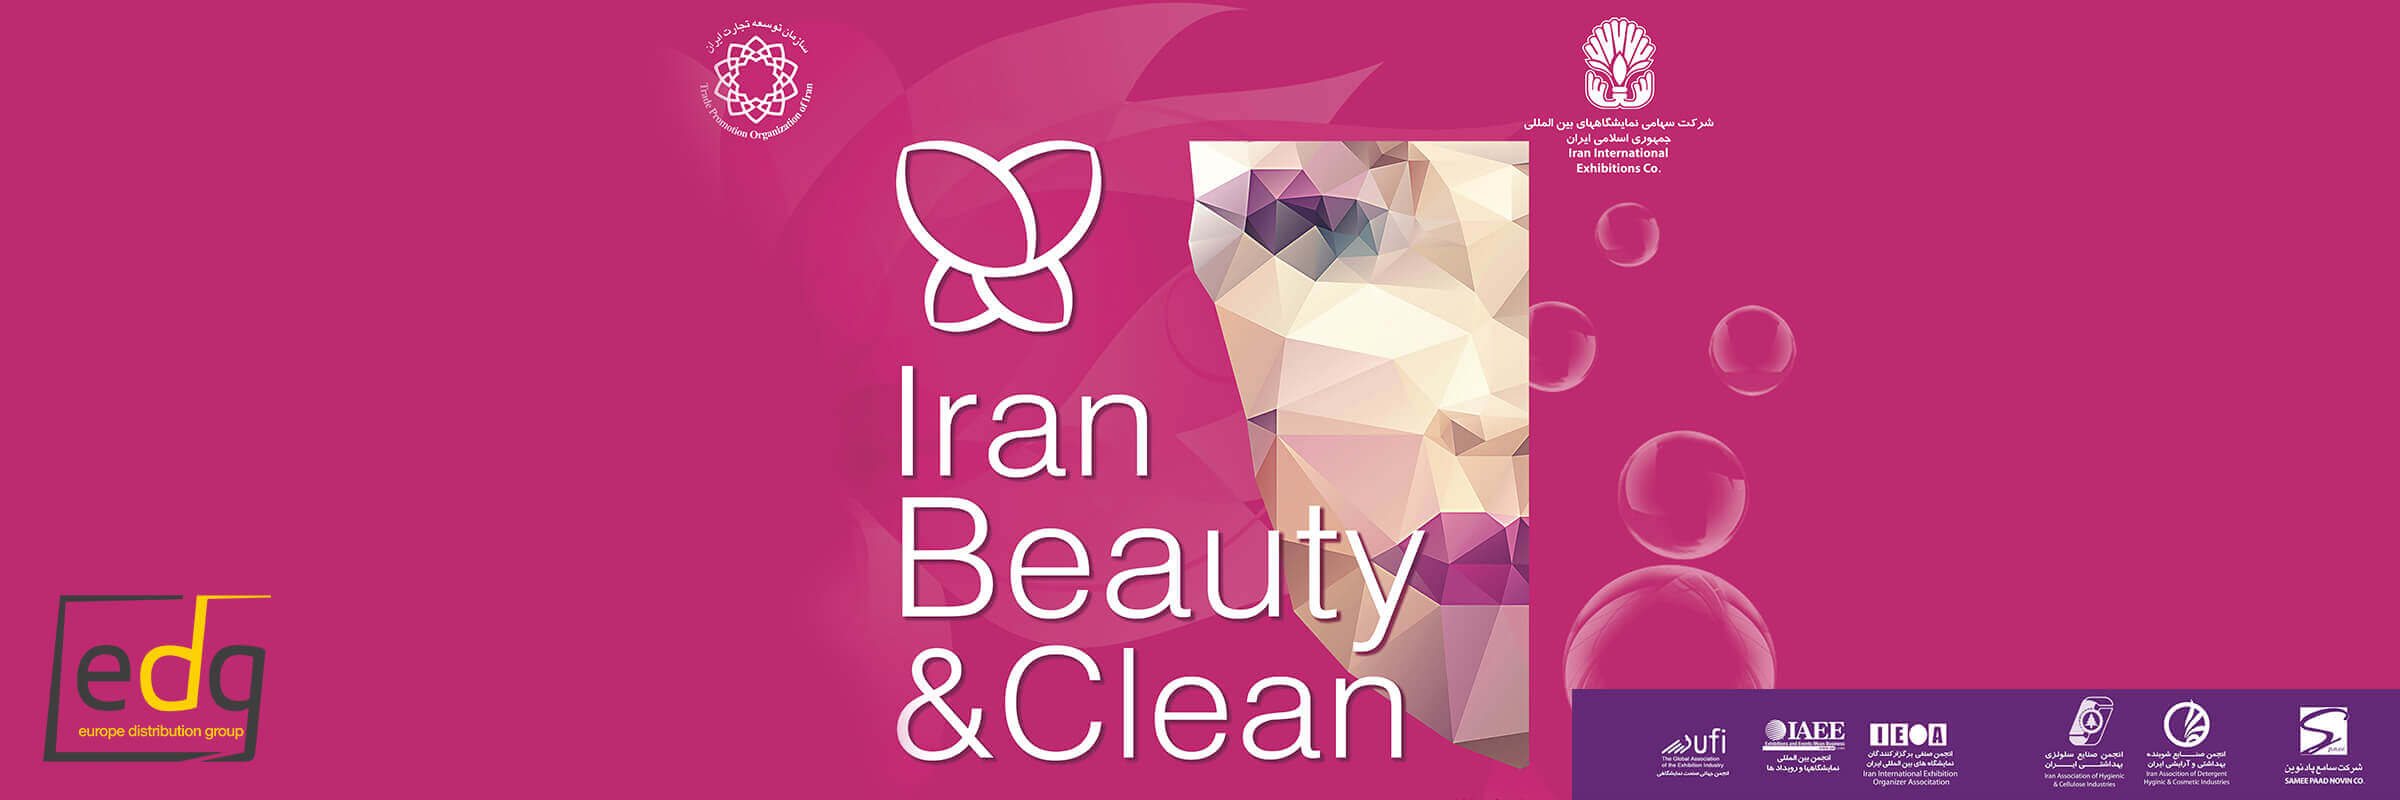 Targi Iran Beauty & Clean 2018